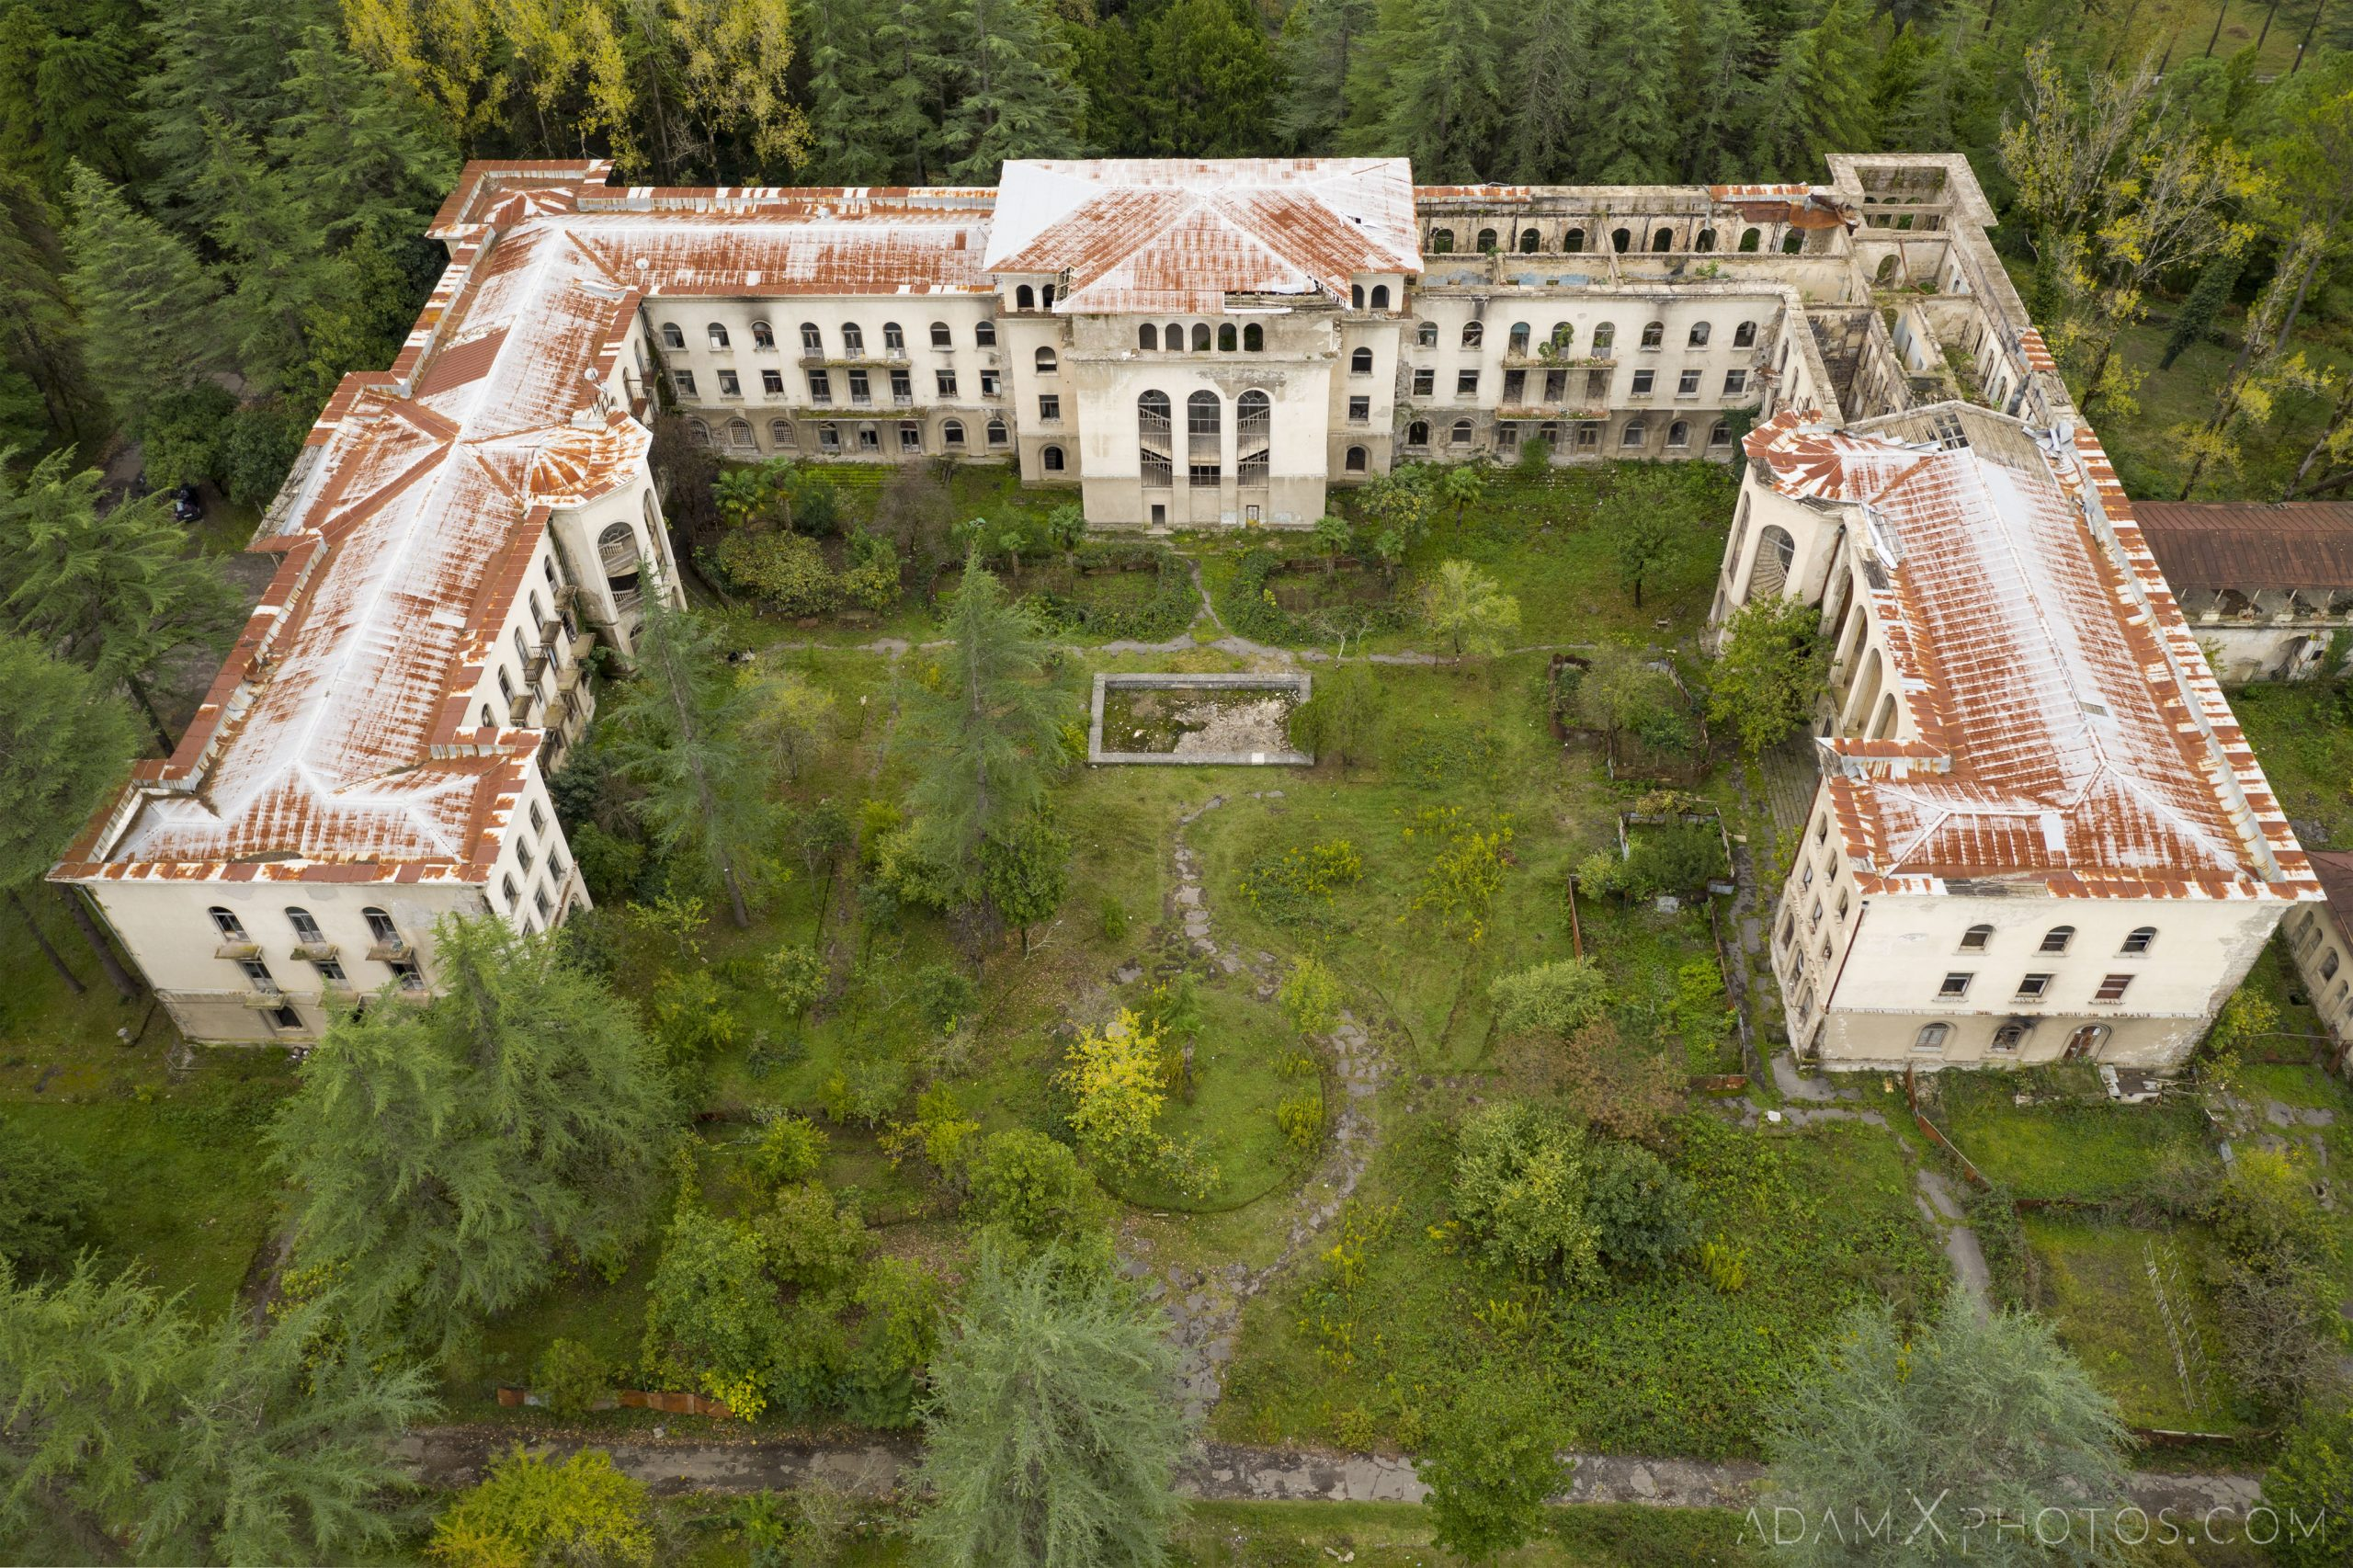 Drone DJI Mavic Pro 2 aerial above looking down Sanatorium Imereti Tskaltubo Georgia Soviet era Adam X Urbex Urban Exploration 2018 Abandoned Access History decay ruins lost forgotten derelict location creepy haunting eerie security